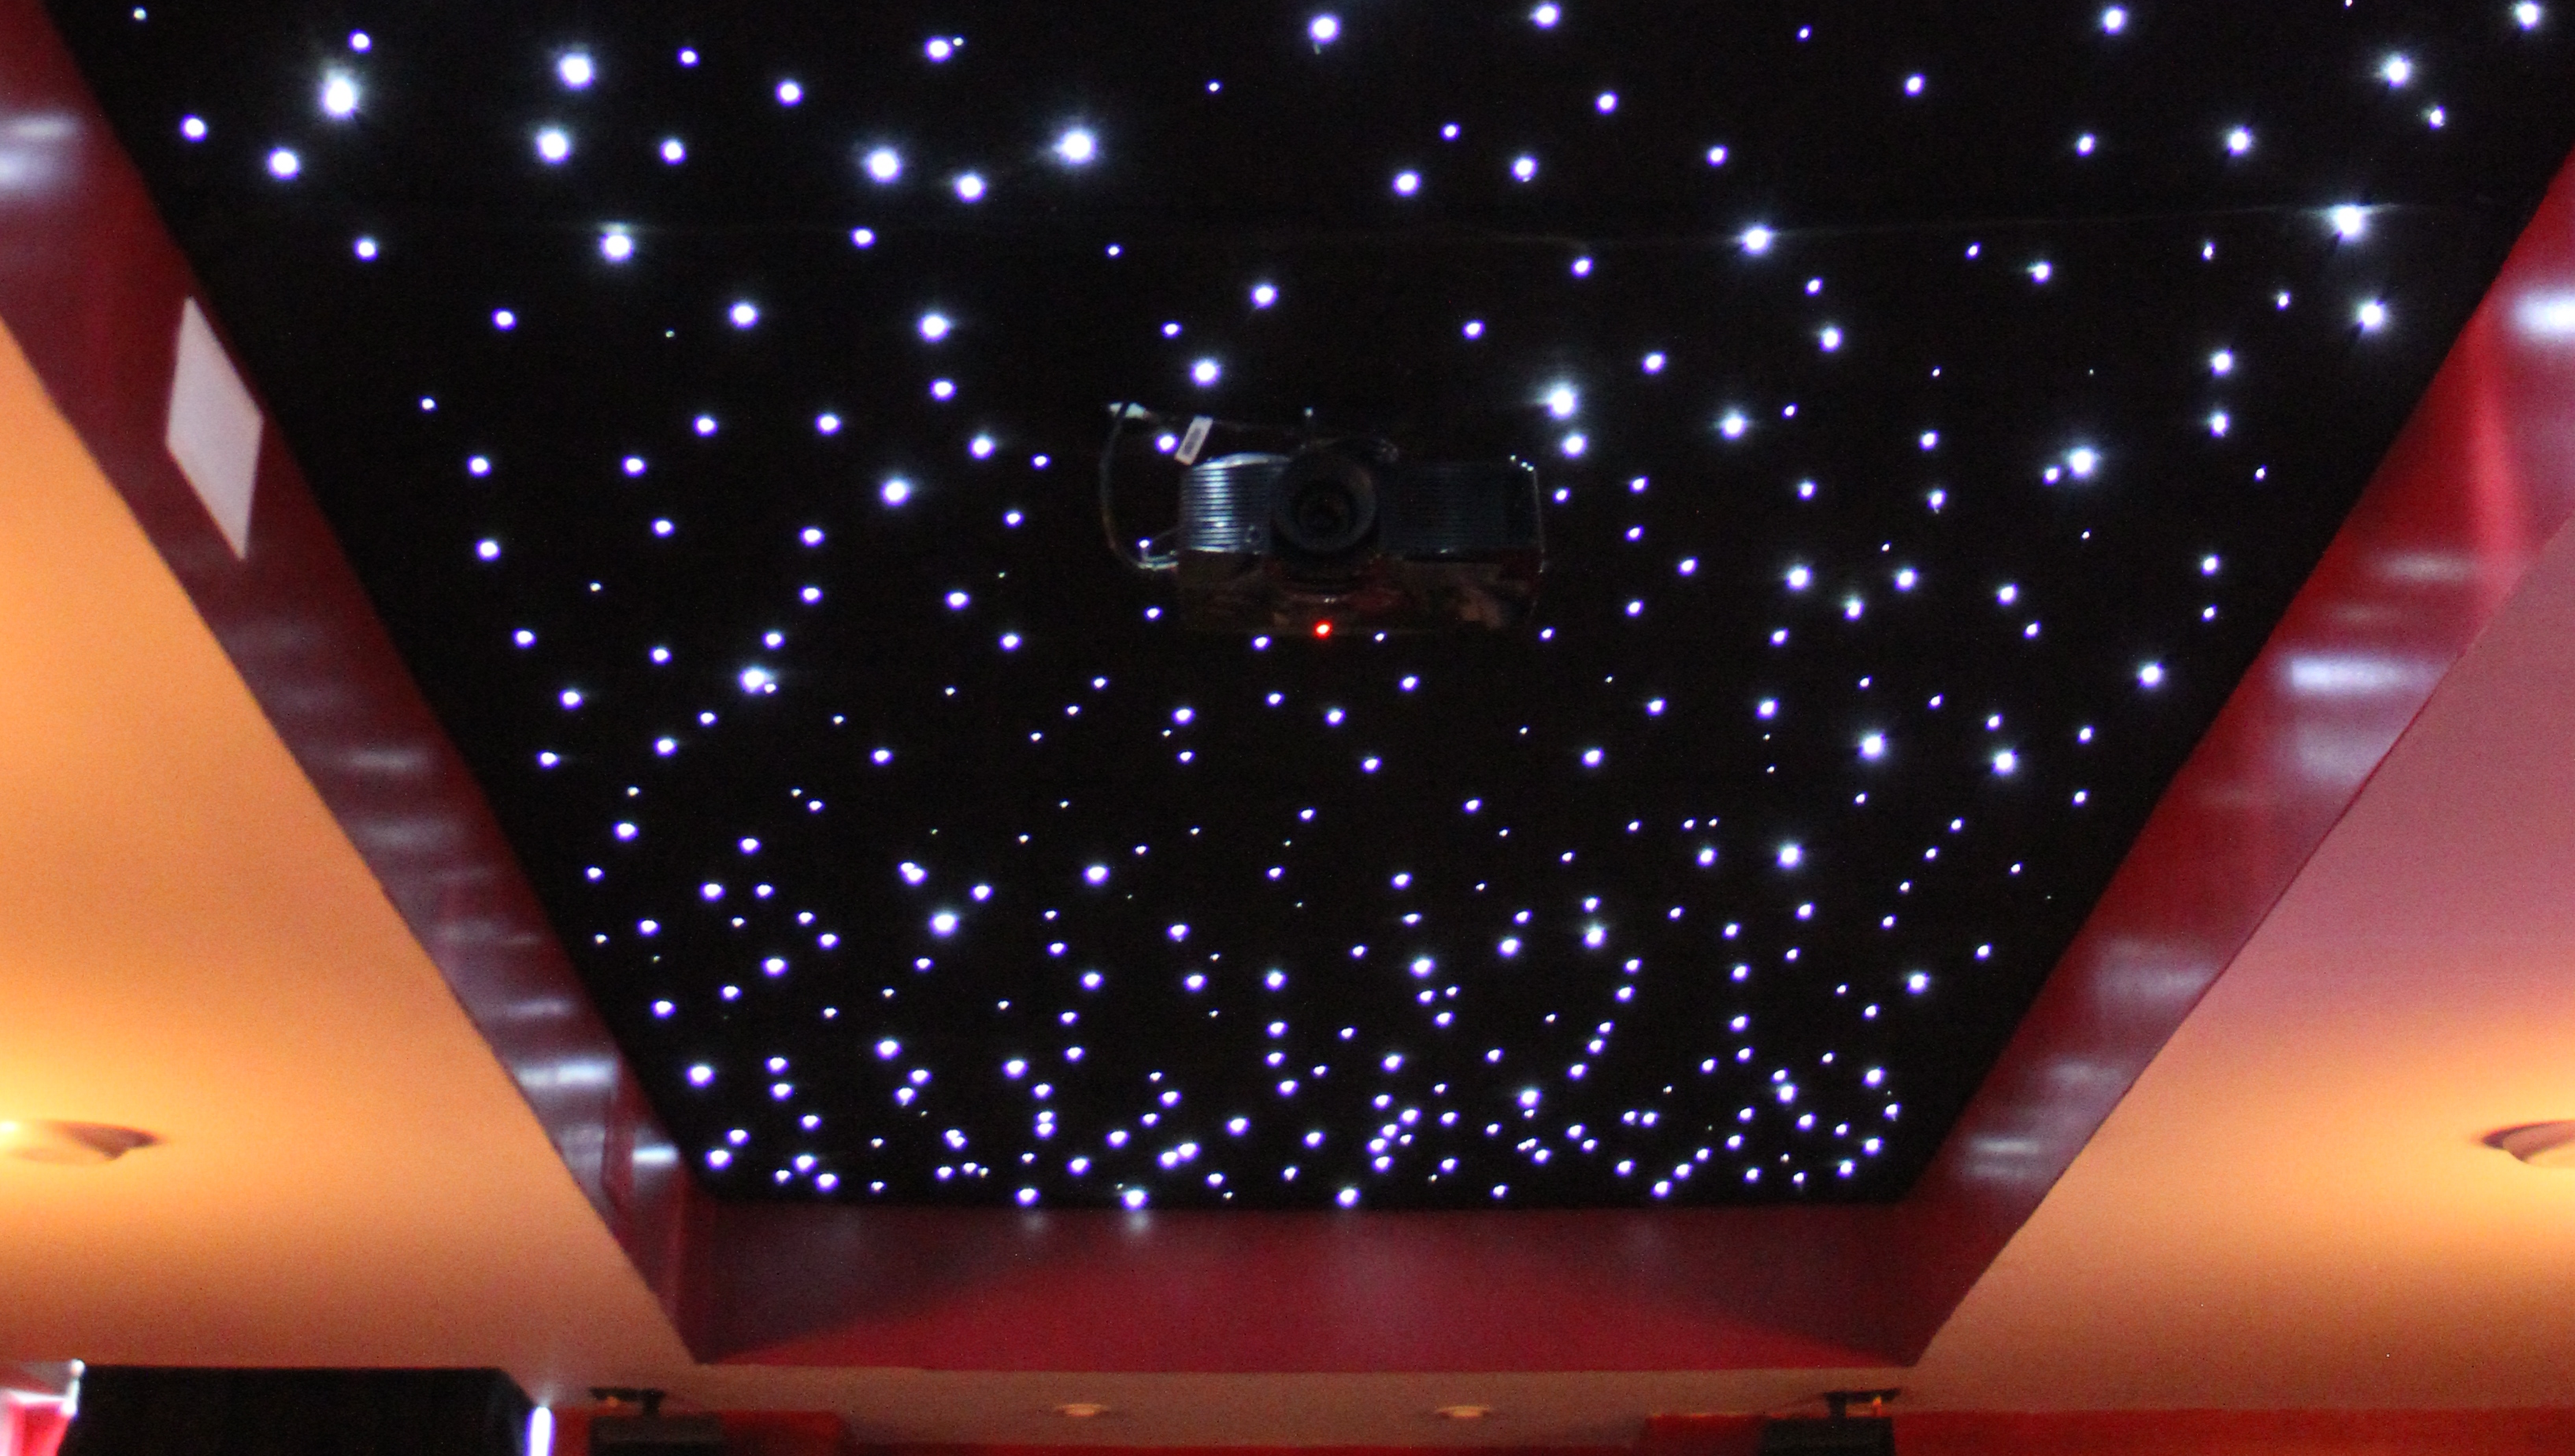 Installing A Fiber Optic Starfield Ceiling Make